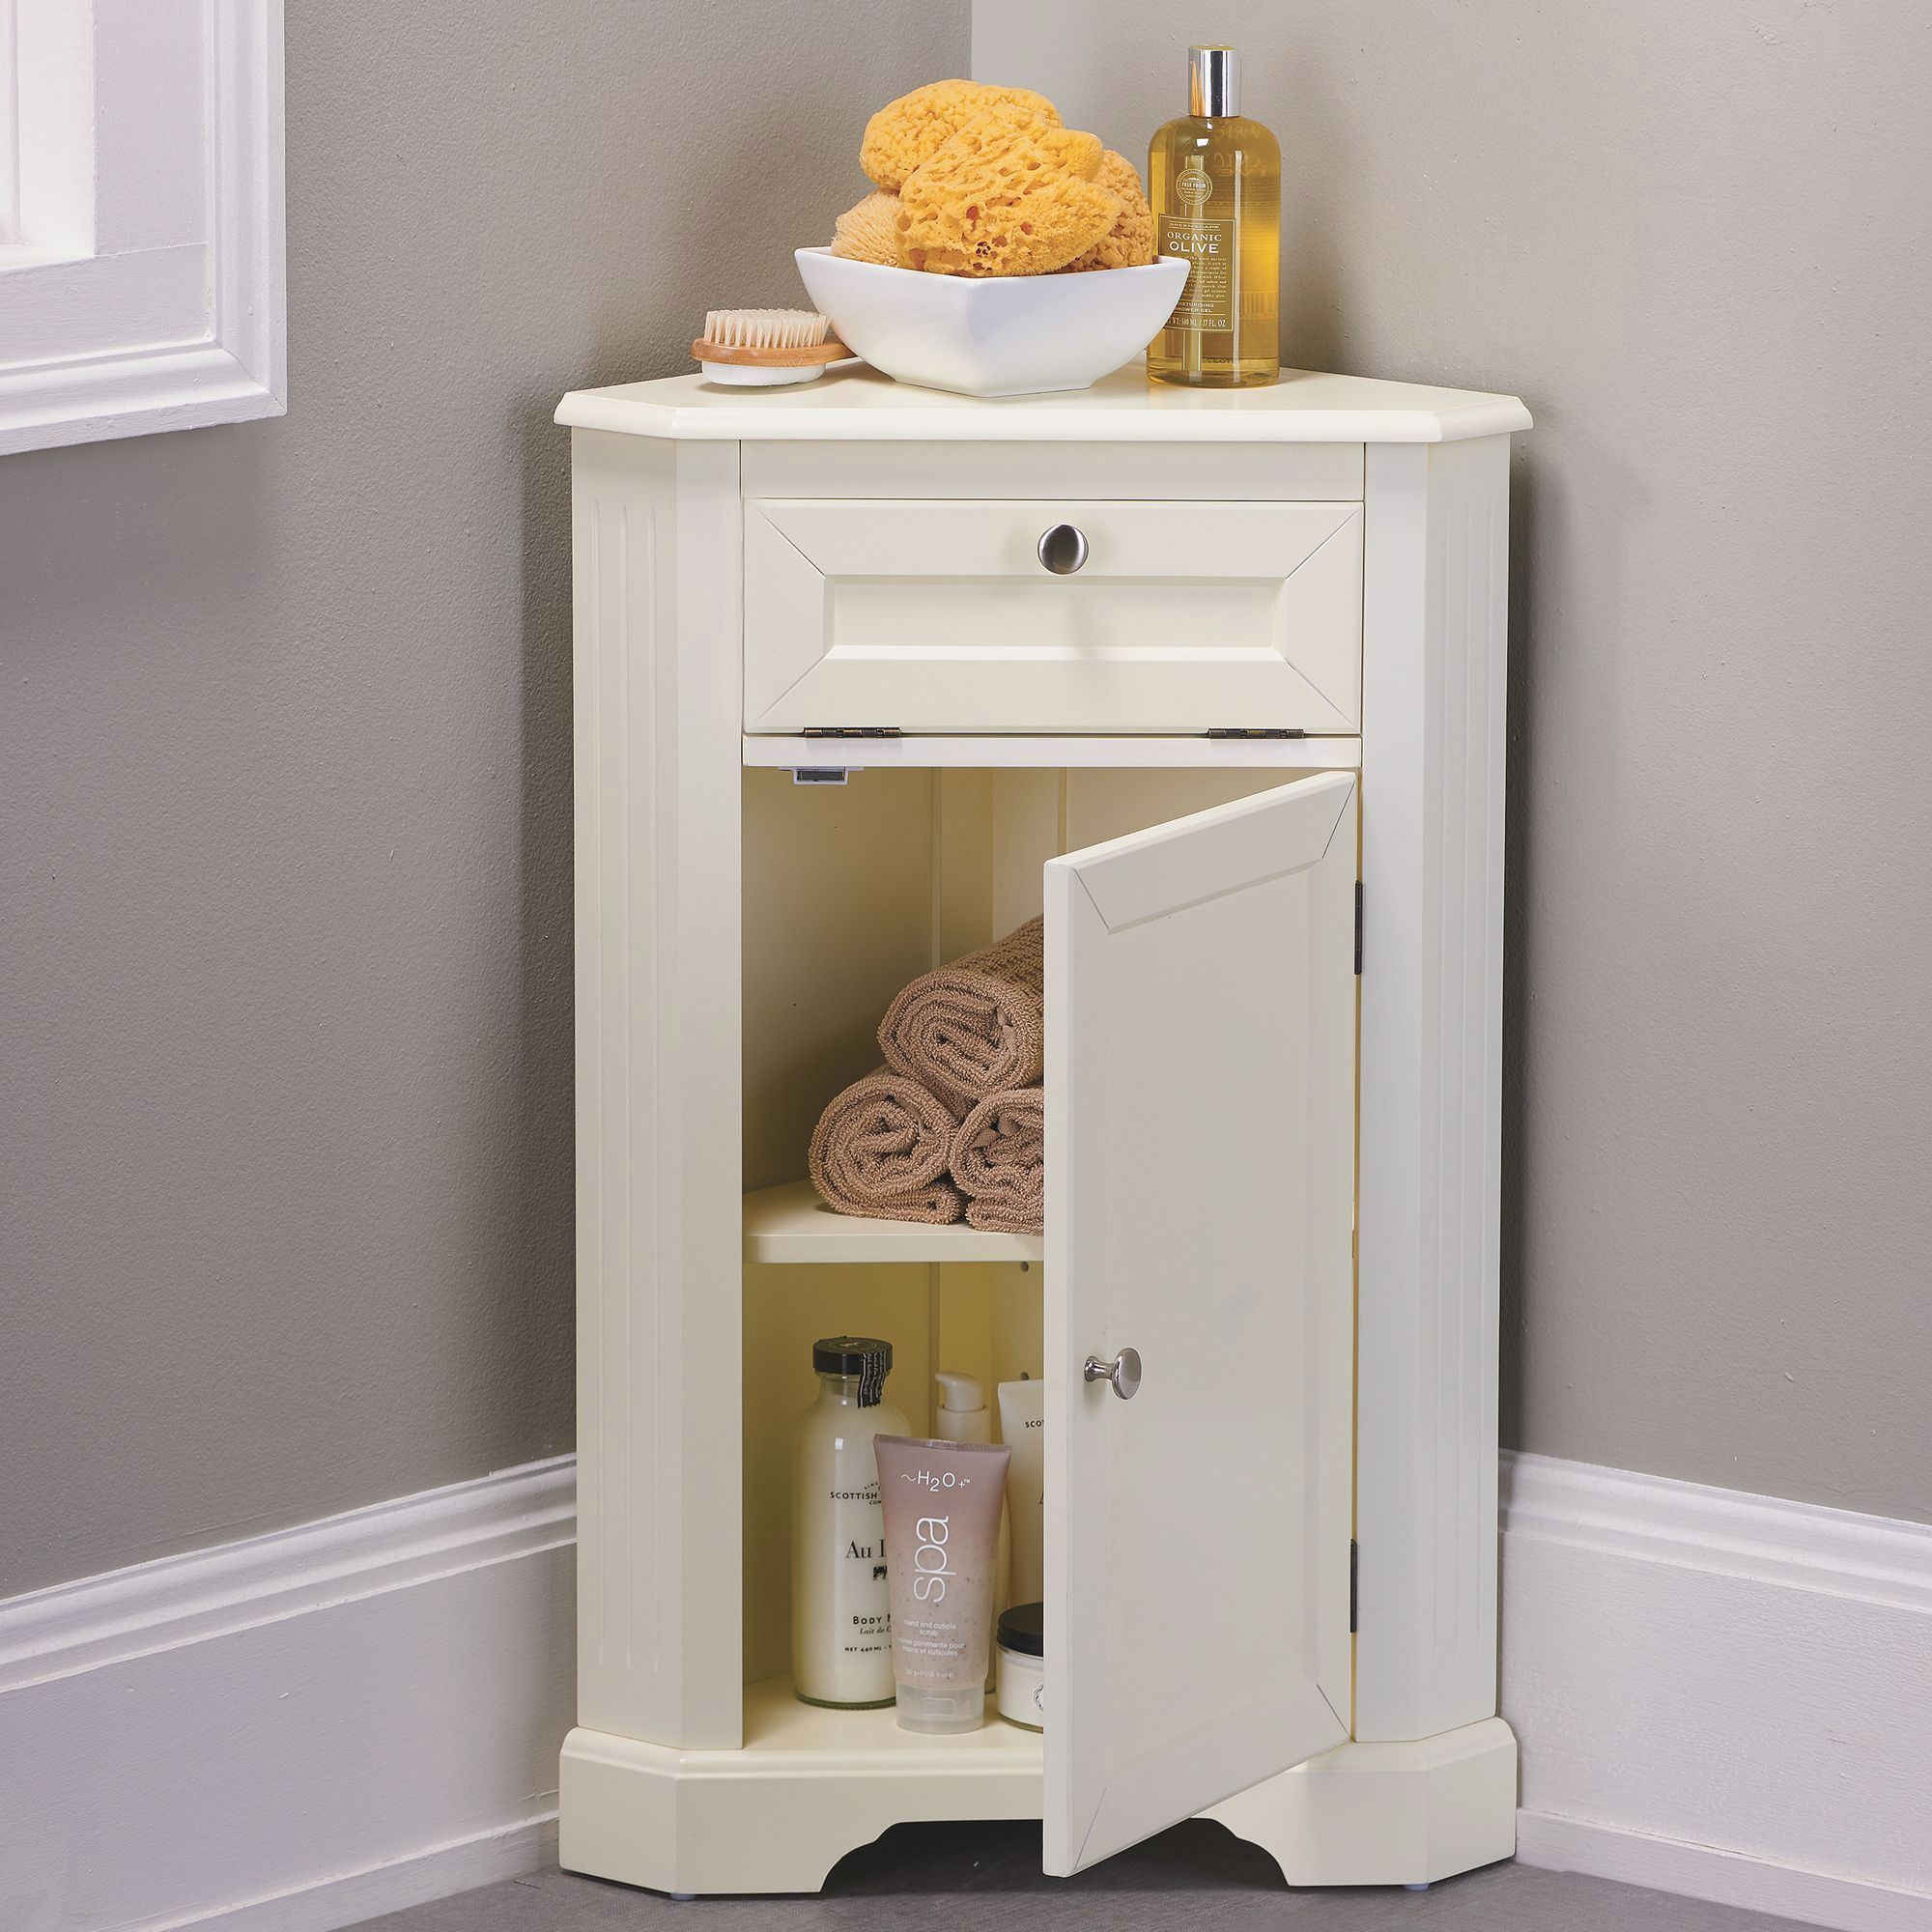 21 Powder Room Corner Cabinets Ideas Room Corner Bathroom Corner Cabinet Corner Cabinet